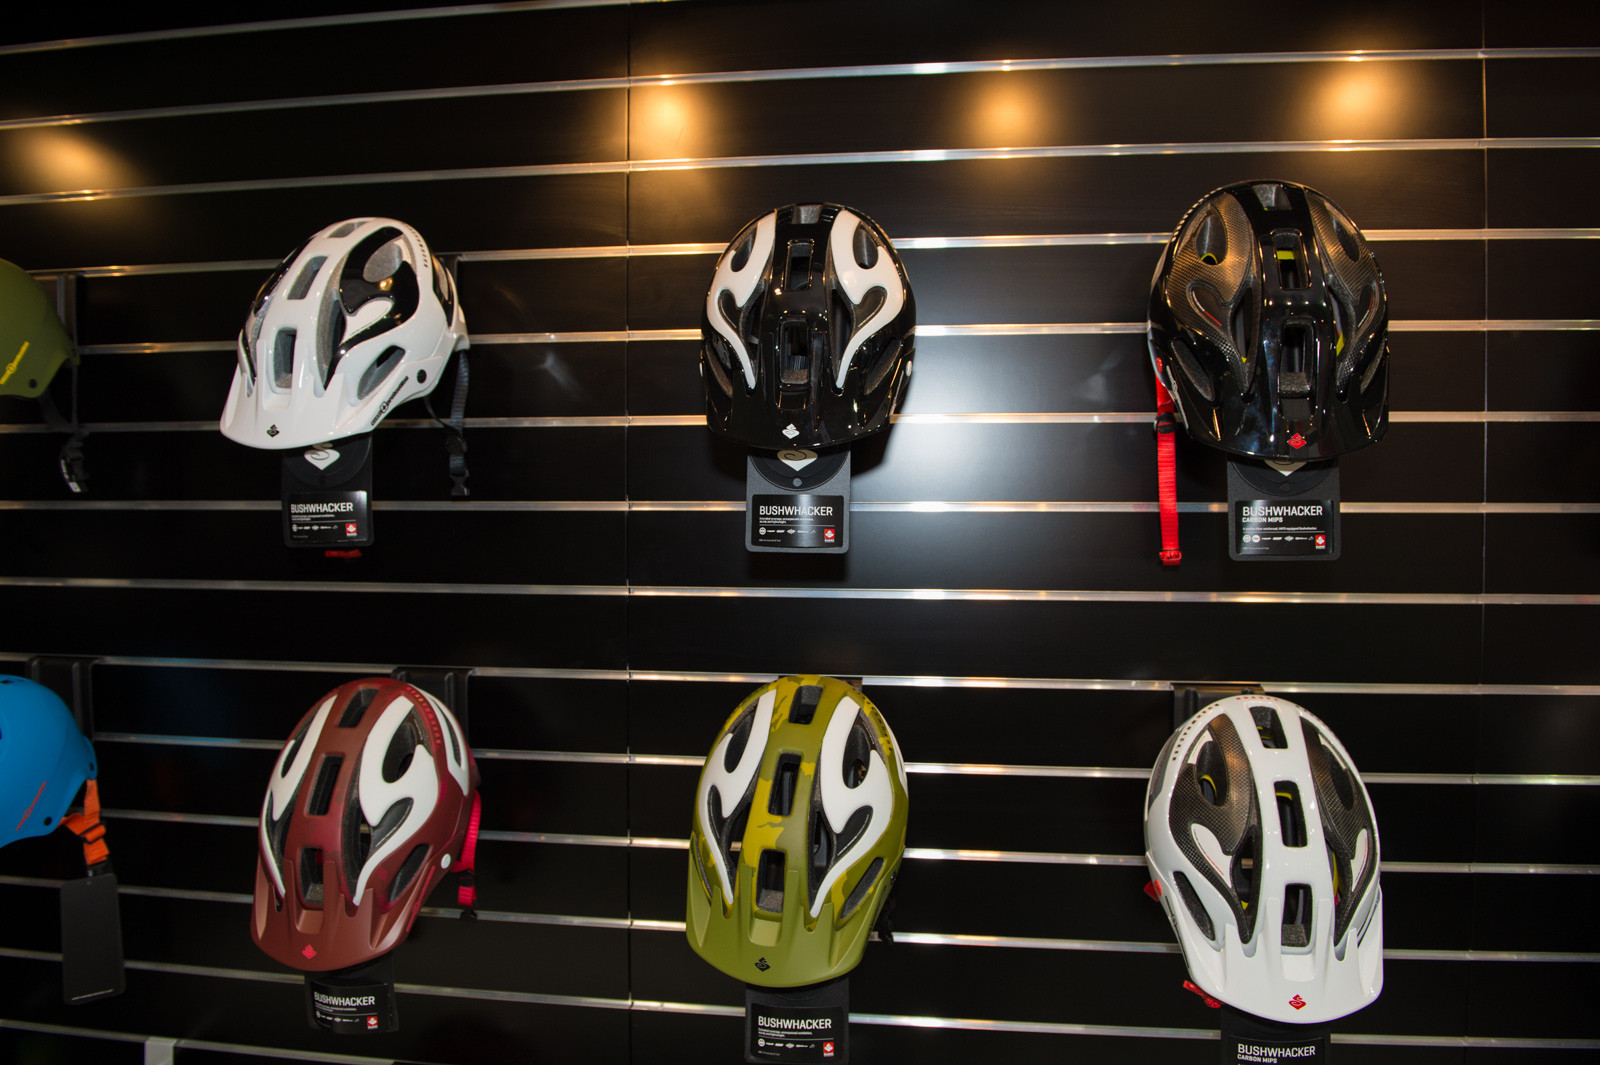 Sweet Protection Bushwhacker Helmets - 2014 Mountain Bike Apparel & Protection at Eurobike 2013 - Mountain Biking Pictures - Vital MTB